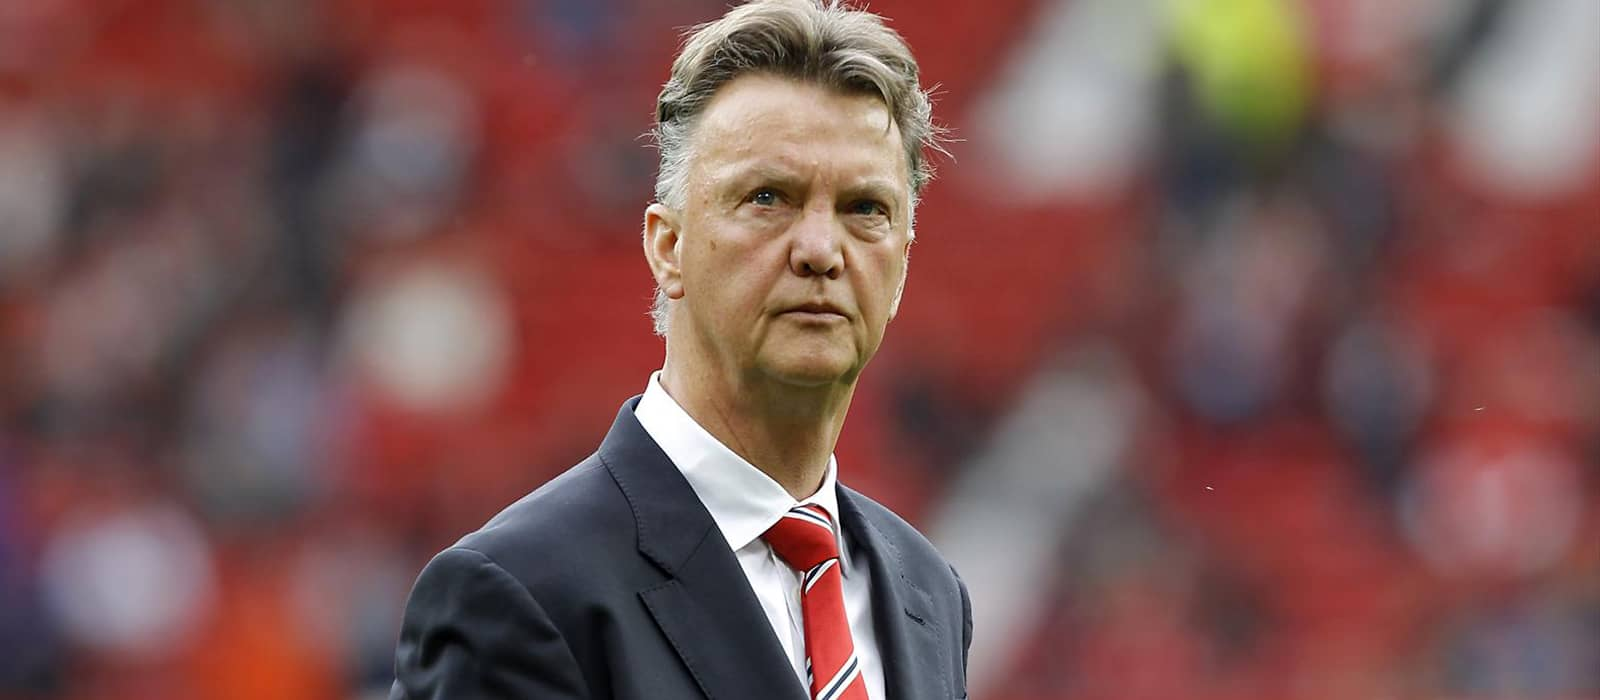 Manchester United: Next manager betting odds – Will van Gaal keep his job?